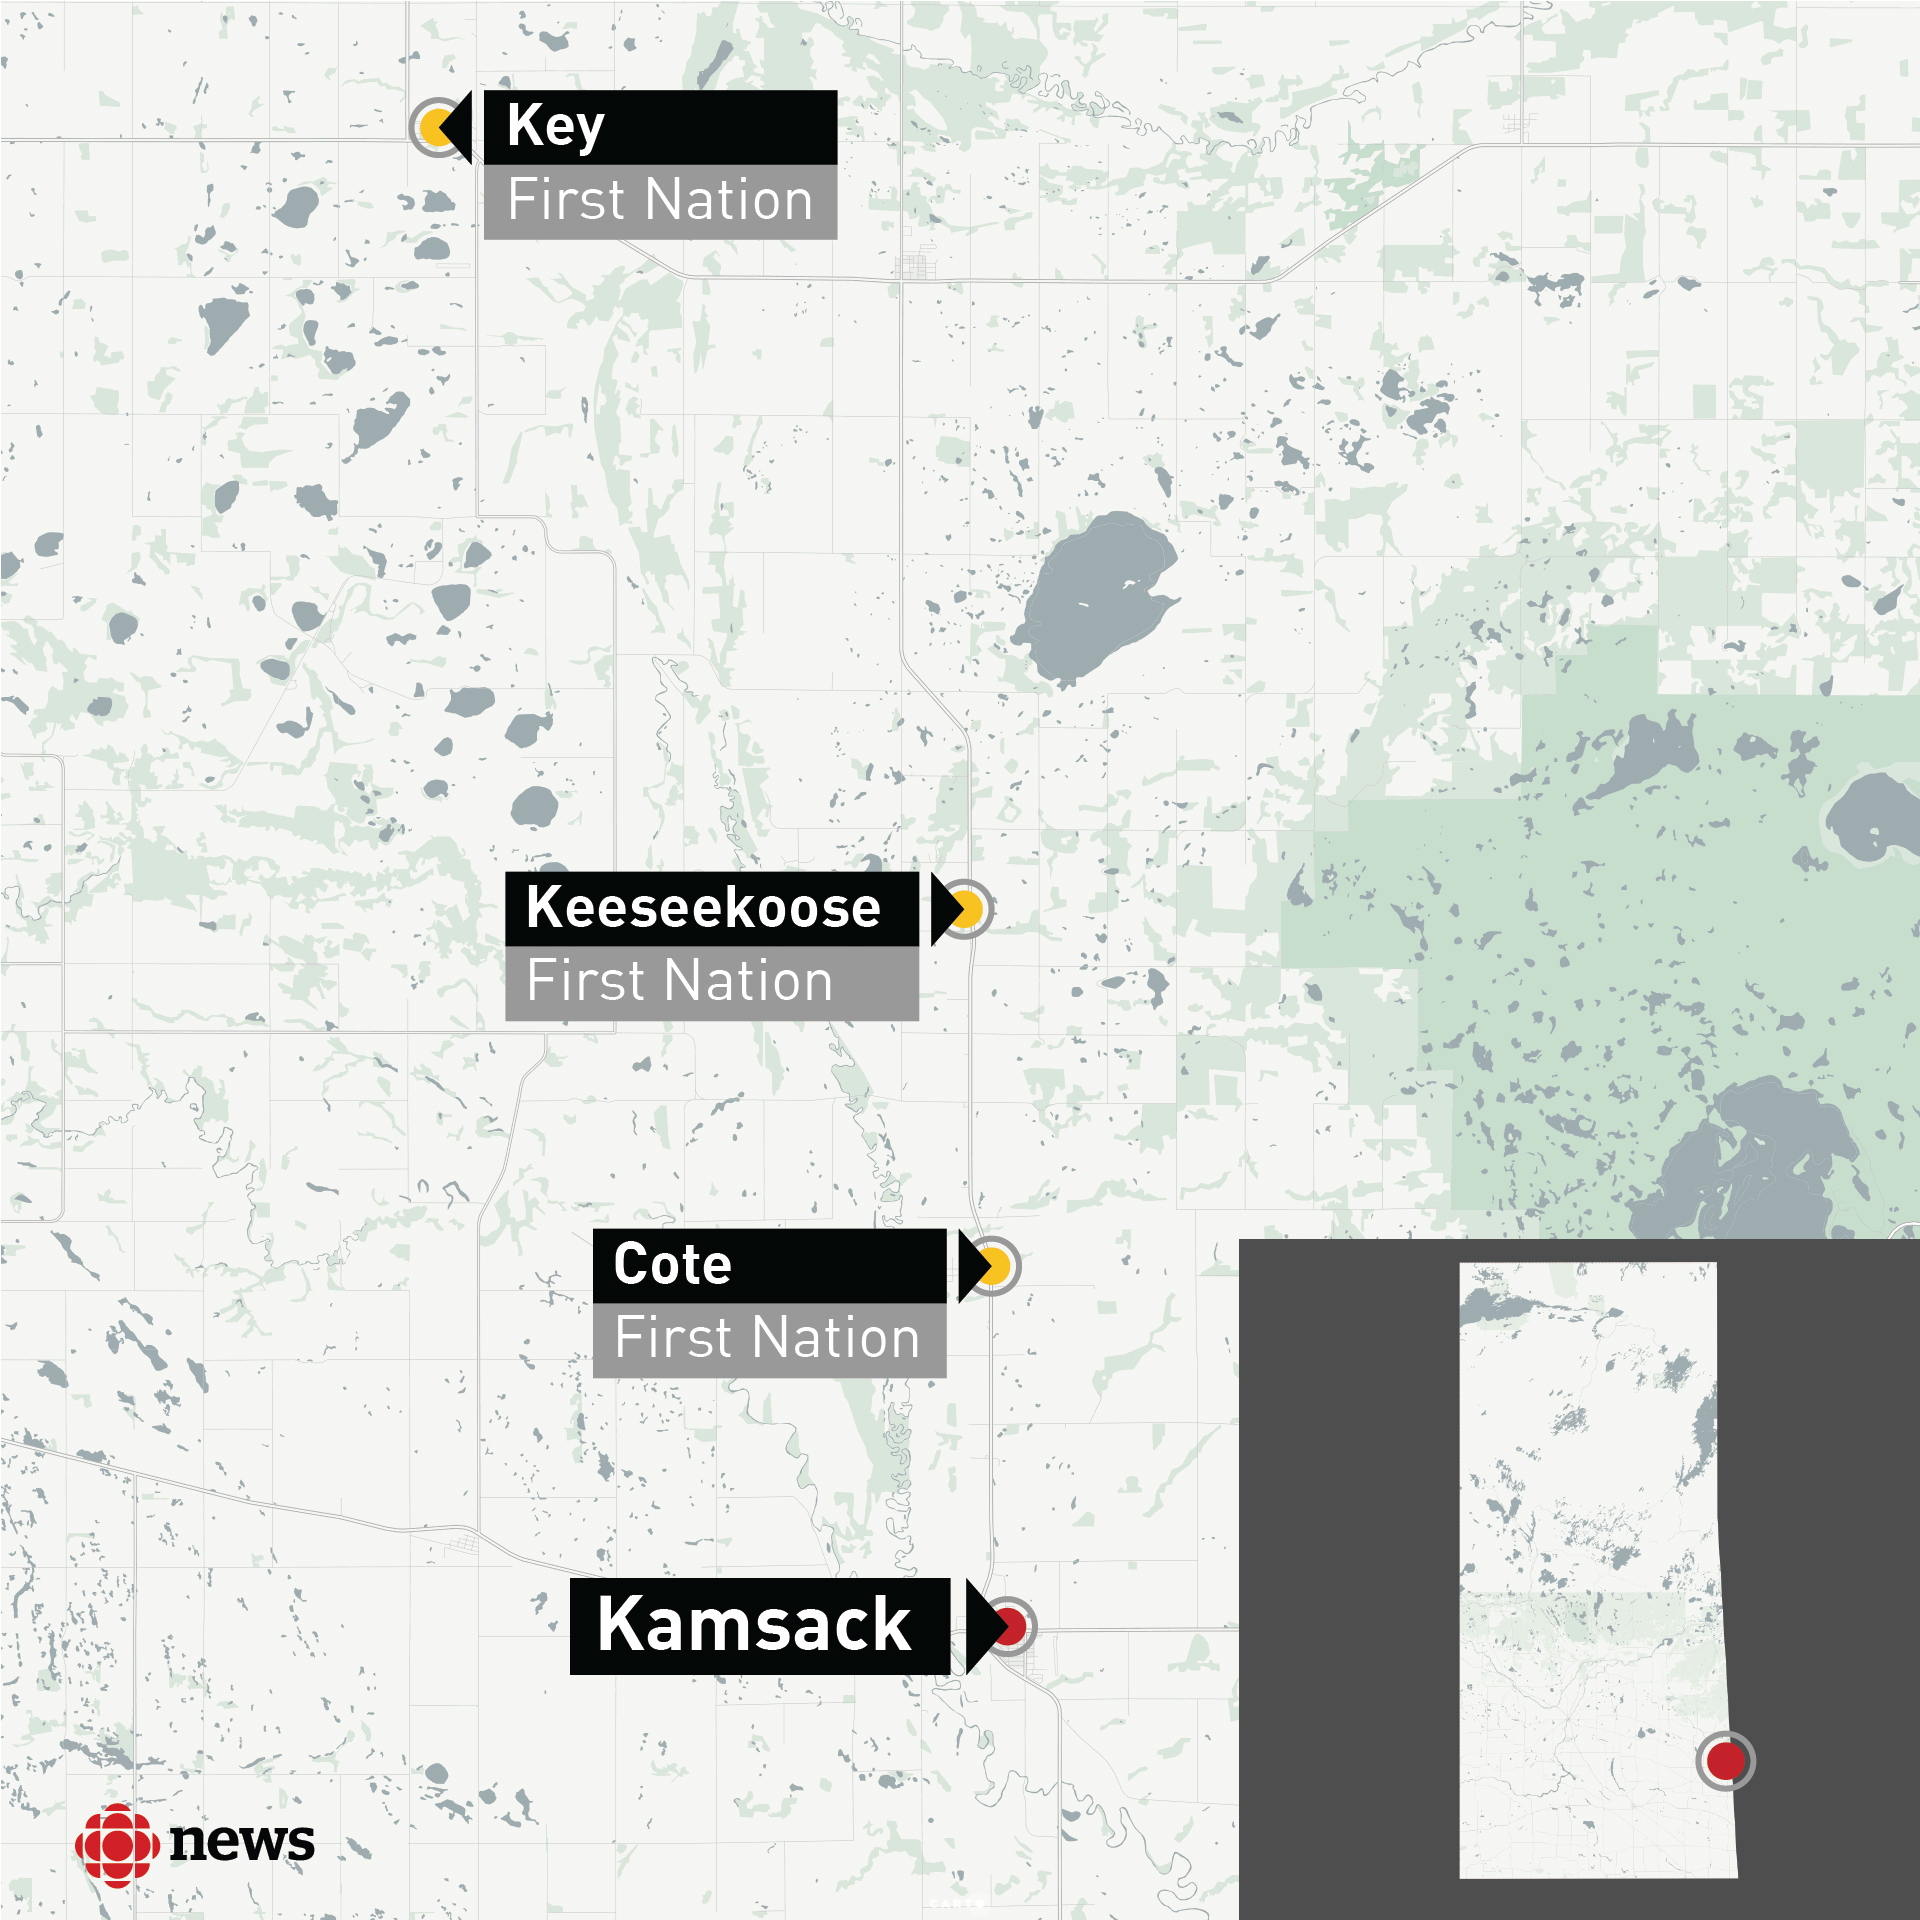 The reserves near Kamsack are not far from the town. It's only about a 40-kilometre drive to Key First Nation.